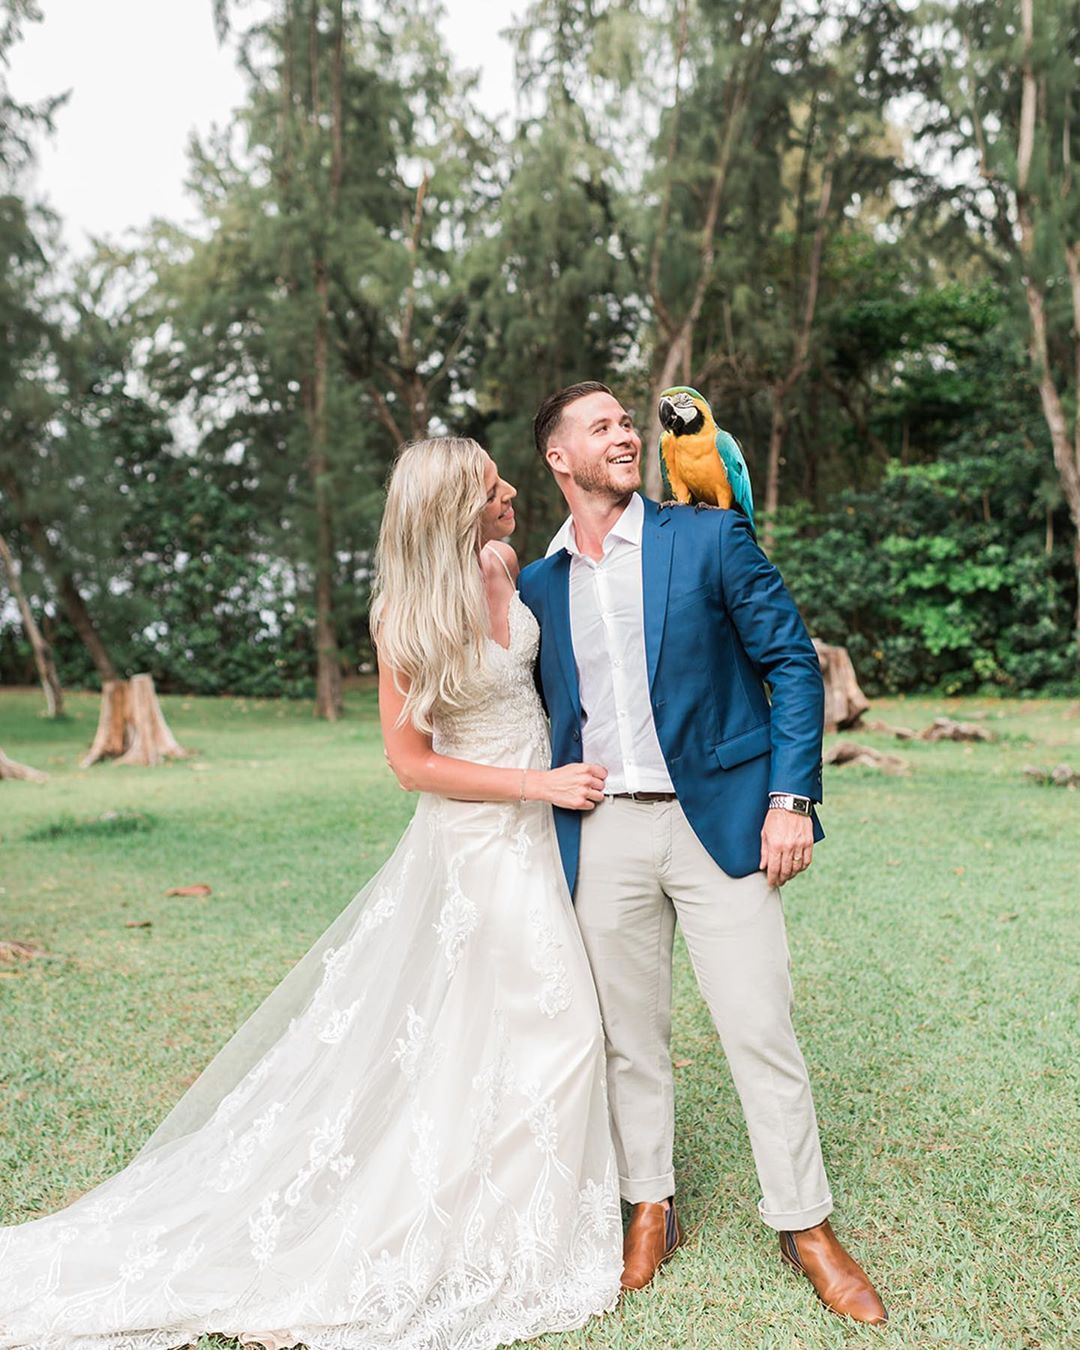 Light-Saturated Photography for the Adventurous - Rae Marshall naturally attracts free-spirited, adventure loving couples on one of the most beautiful locales in the world. With years of experience (and hundreds of weddings!) under her belt, Rae knows how to chase the light, freeze the moment, and capture priceless memories. You've chosen Hawaii as your wedding destination for a reason, and Rae's light-saturated, joyful images couldn't capture the beauty of the islands more perfectly!Visit WebsiteOahu, HawaiiEmail: info@raemarshall.com